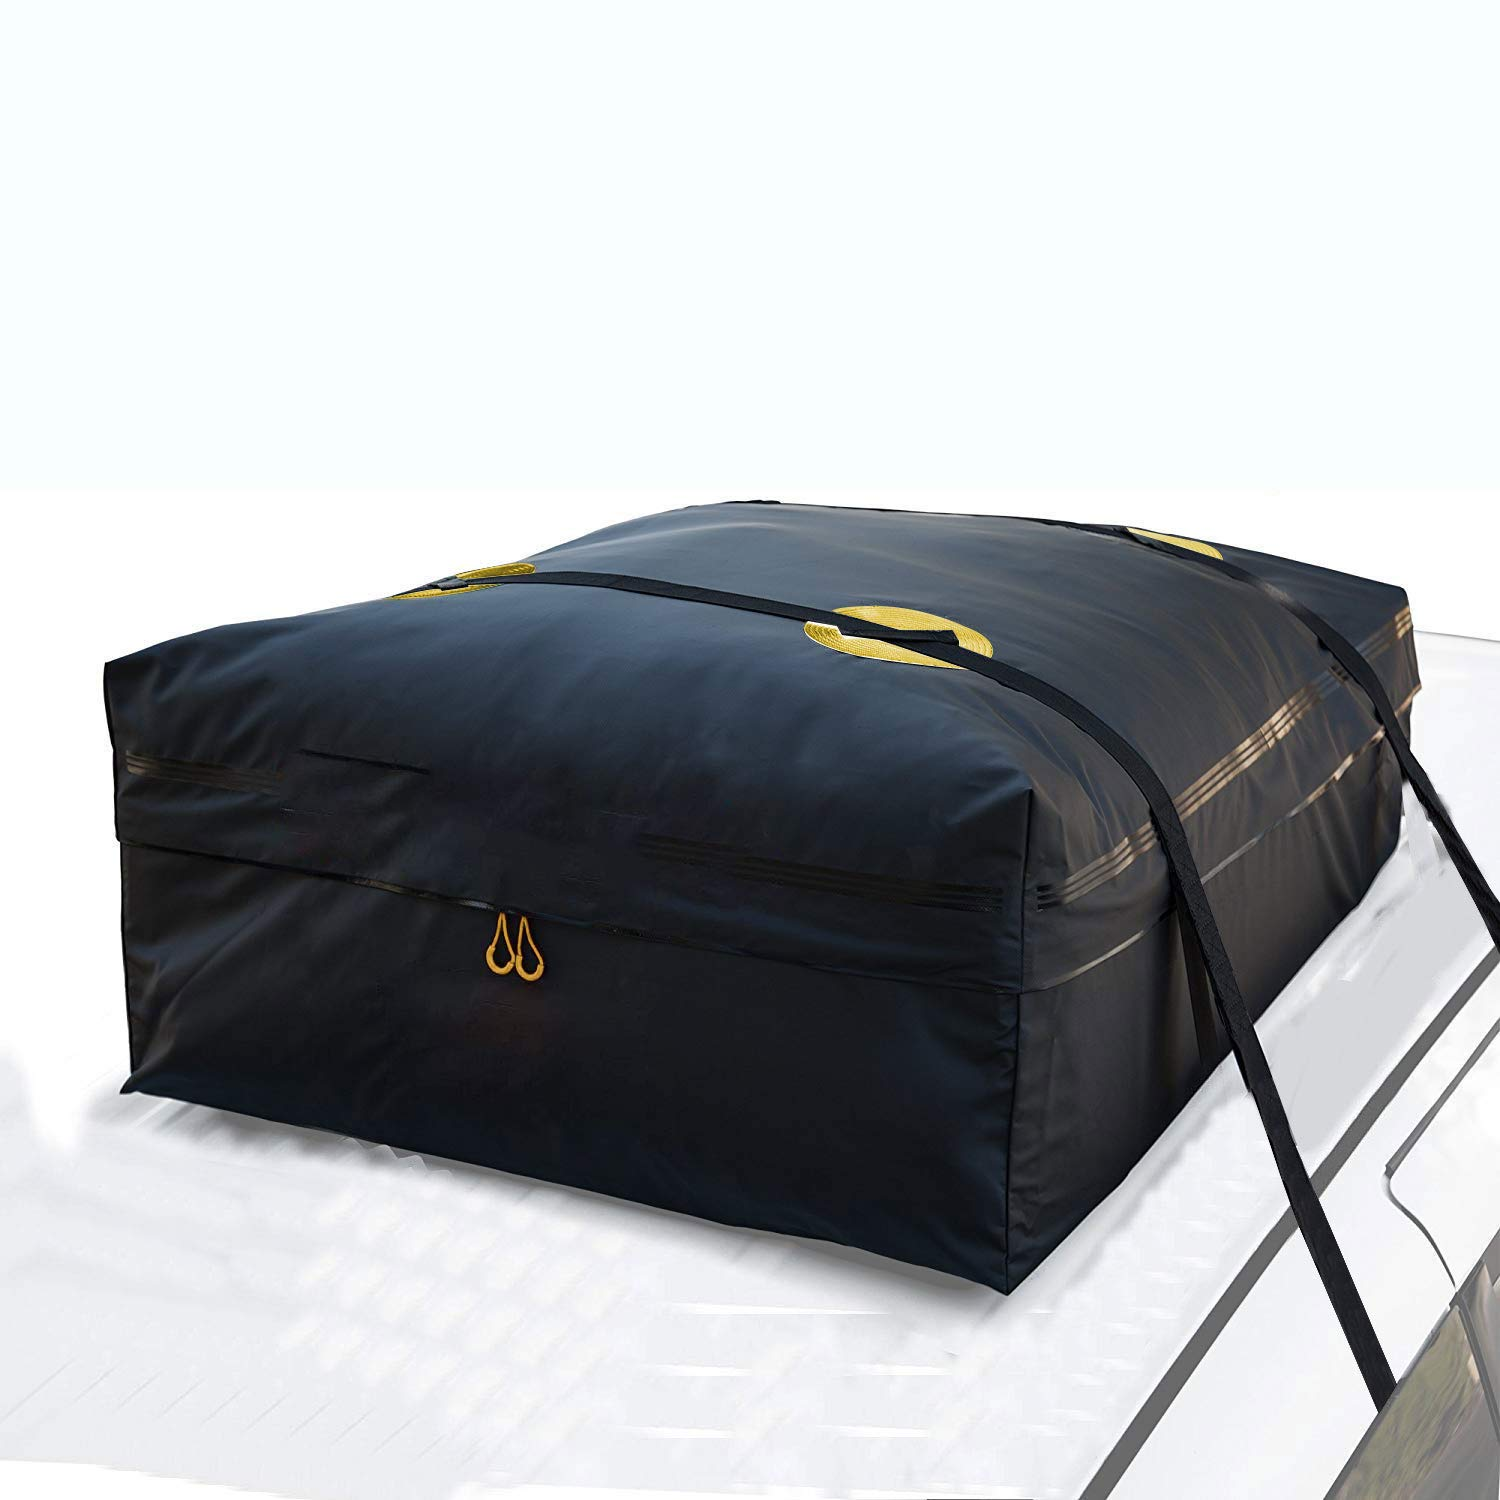 Heavy Duty Roof Top Luggage Storage Bag with 2 Reinfored Long Straps FeelGlad 5558995413 Perfect for Car with//Without Rack 15 Cubic Feet Rooftop Cargo Carrier Bag